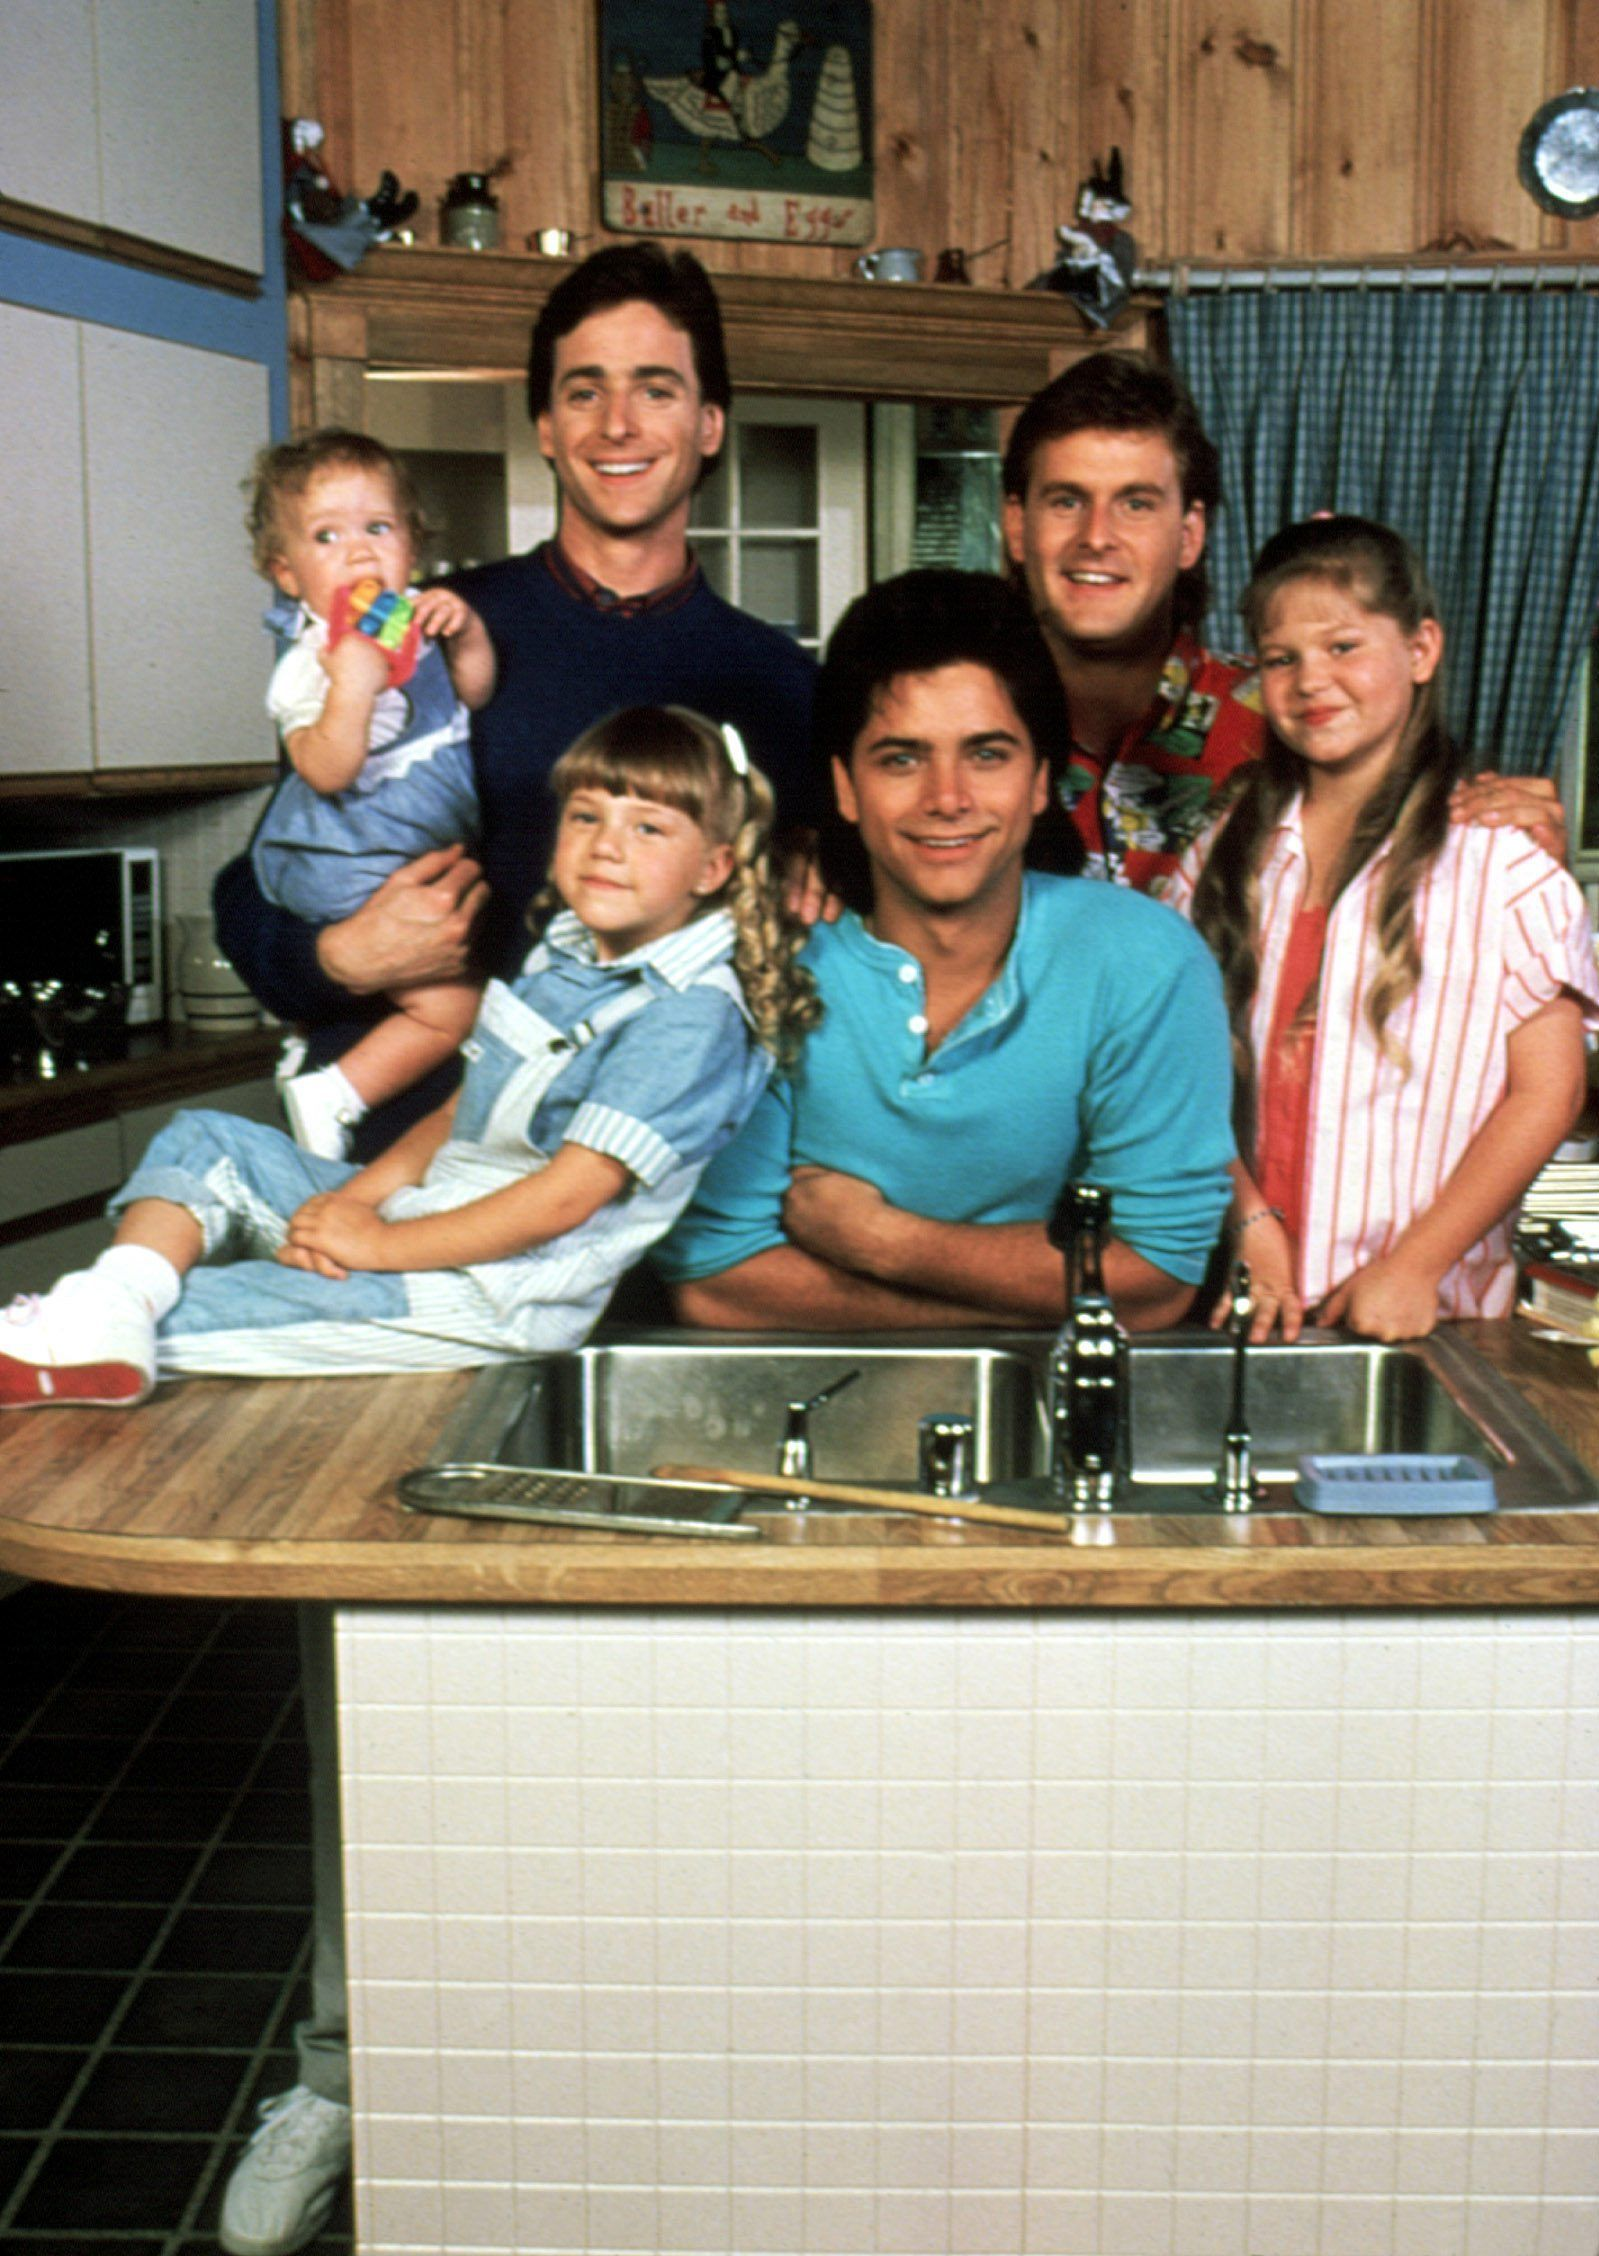 11 Things You Didn't Know About Full House - Fame10